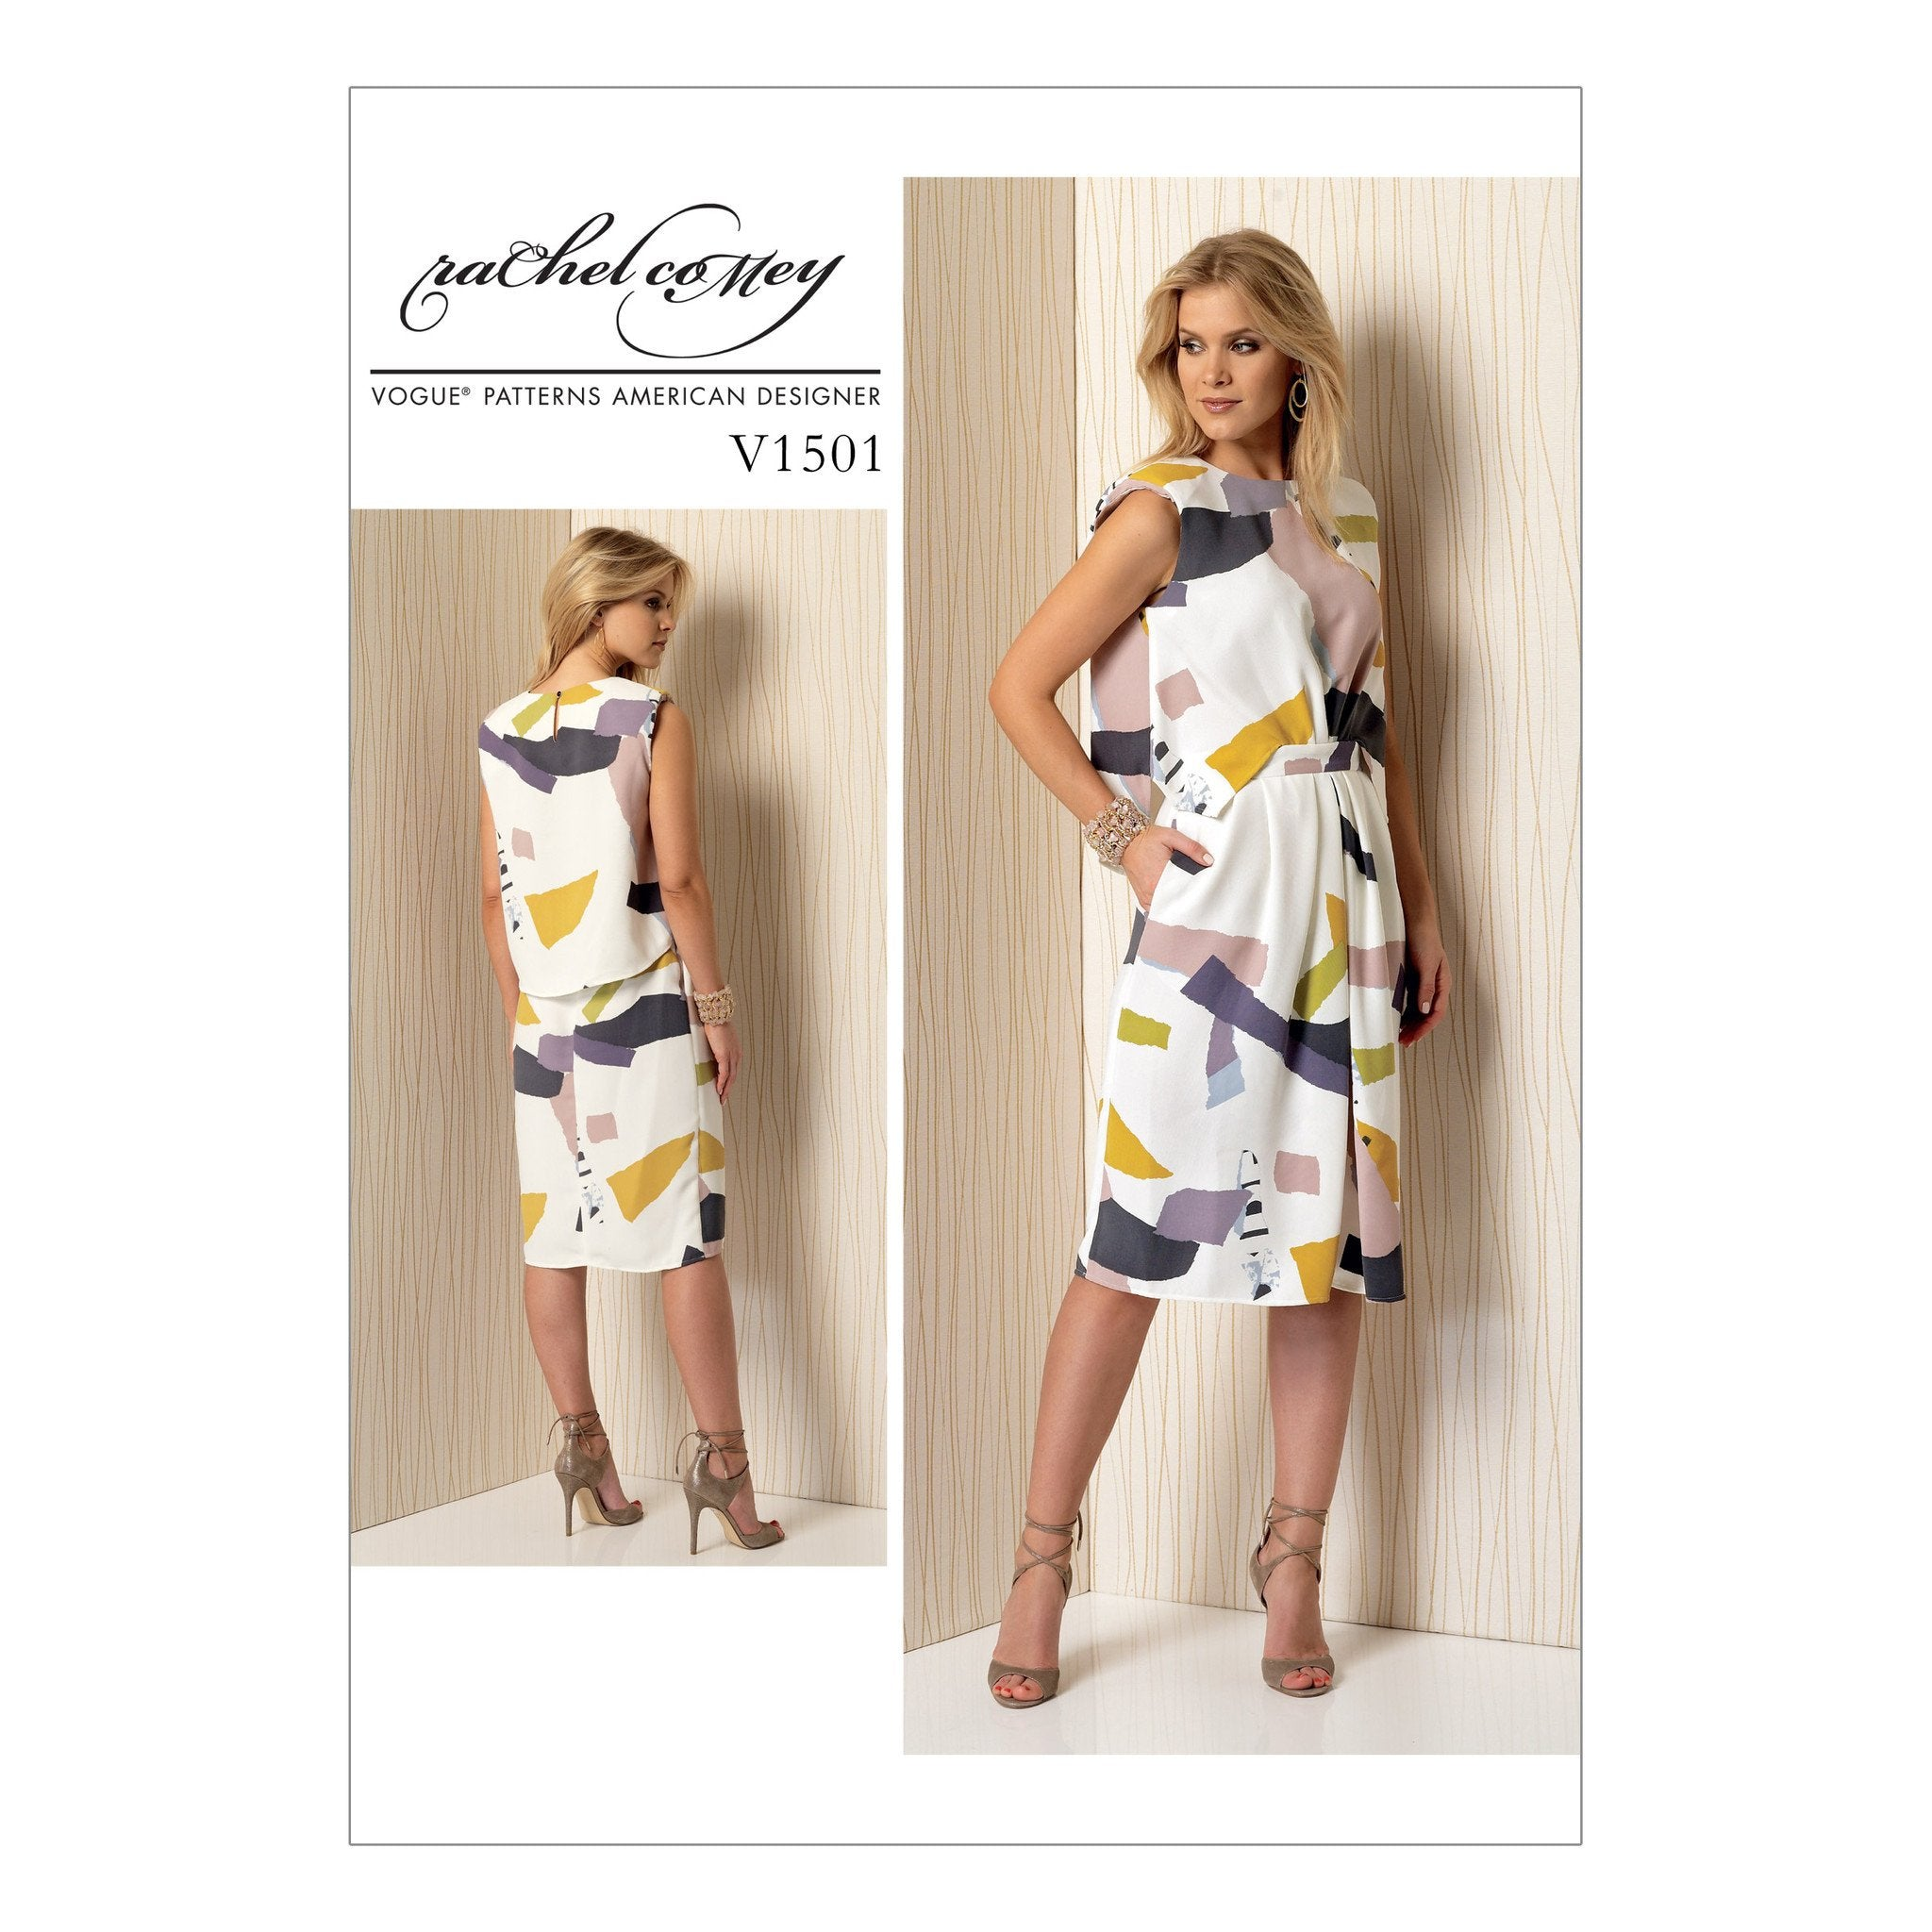 Vogue pattern V1501 Misses' Mock-Tuck Pleated Dress